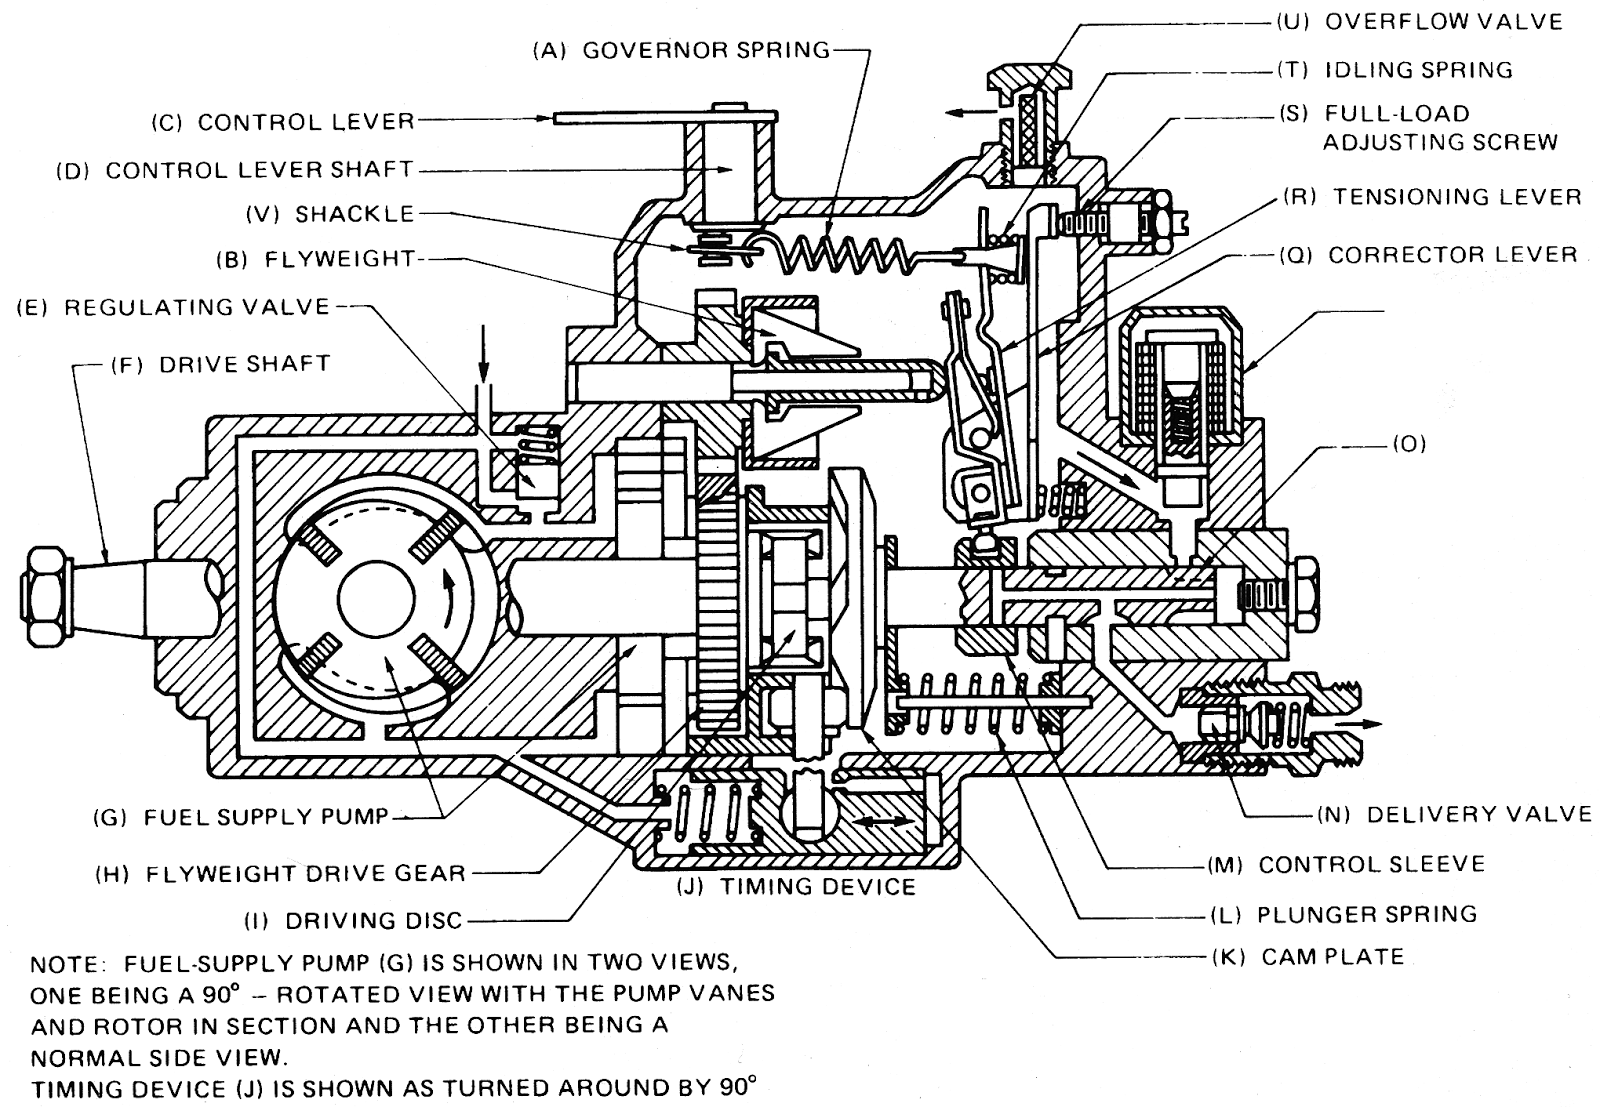 5 9 cummins fuel system diagram composite volcano labeled vp44 injection pump wiring imageresizertool com